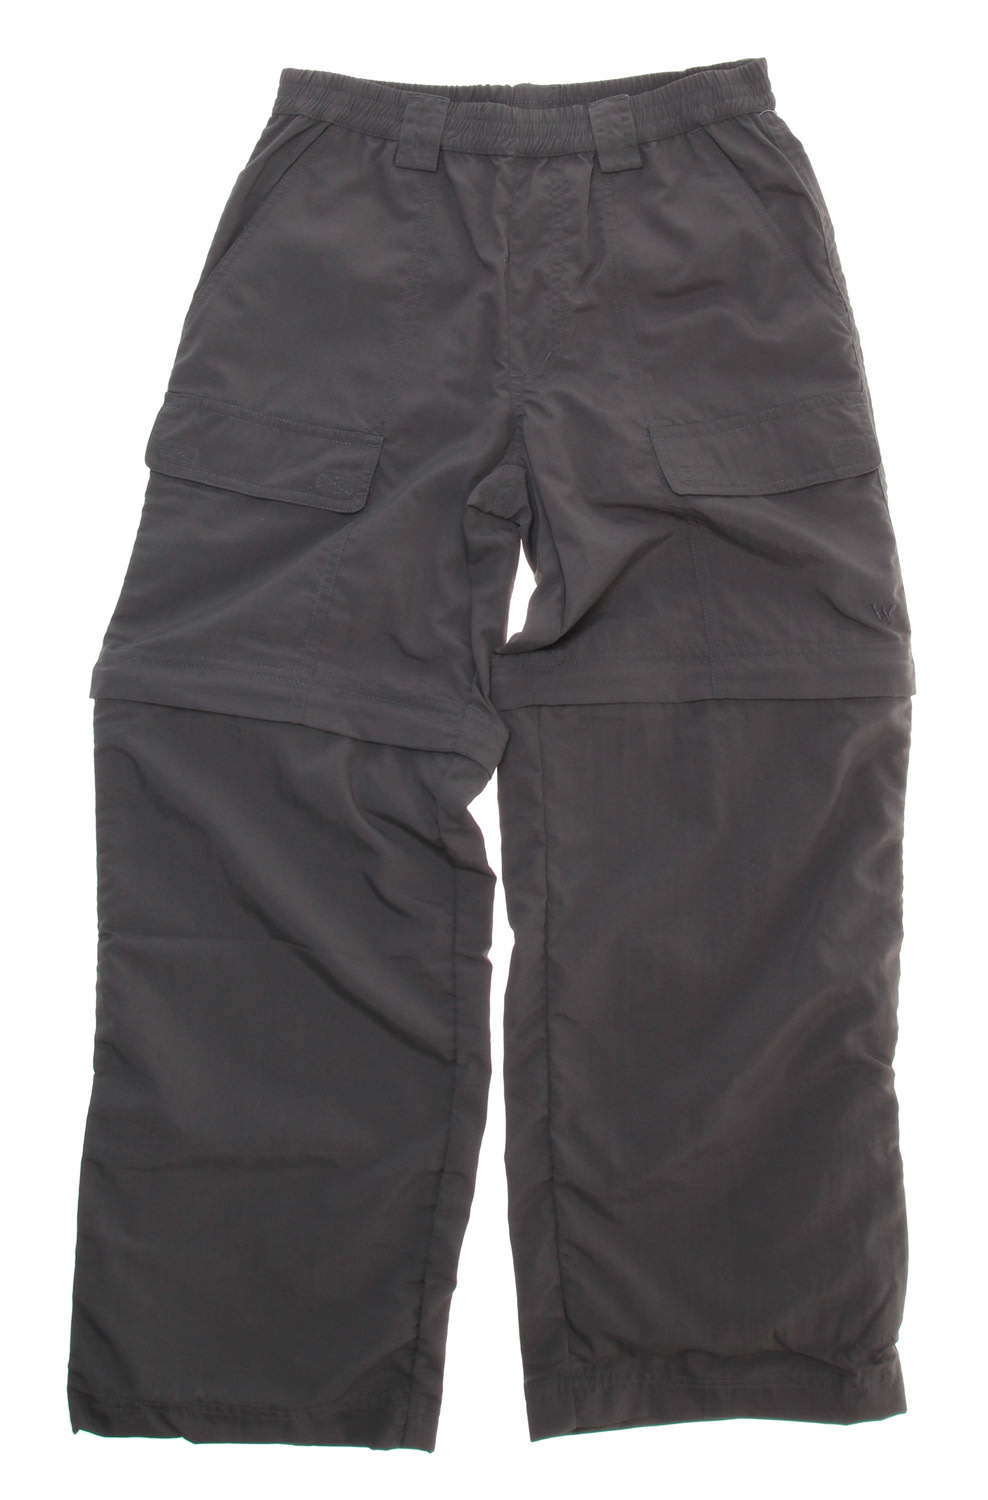 Shop for White Sierra Trail Convertible Pants Caviar - Kid's